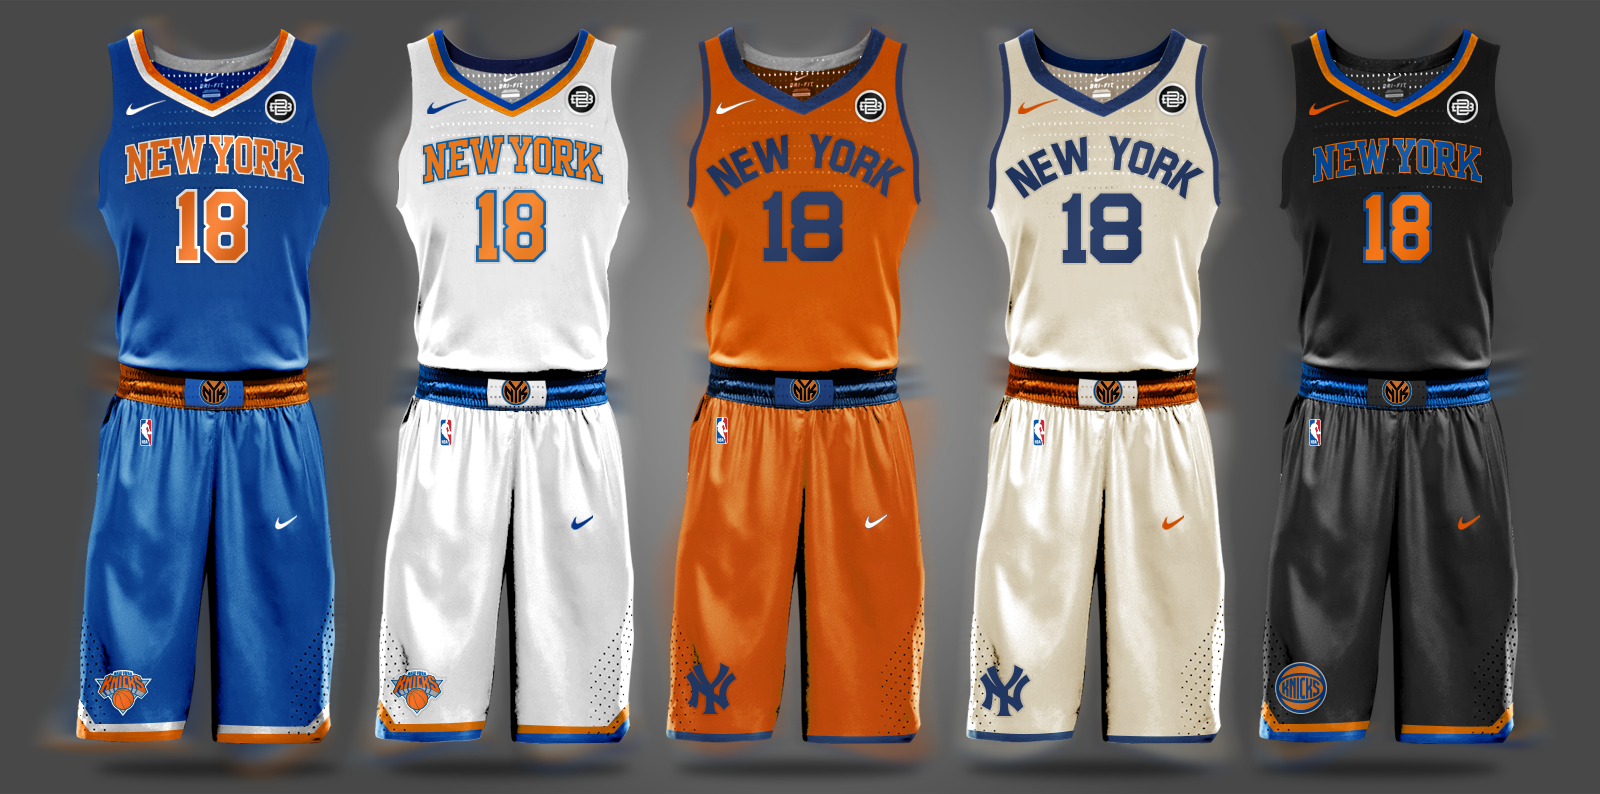 bad678705cac New York Knicks Carmelo Anthony Kristaps Porzingis Phil Jackson NBA Draft  Nike Throwback Uniforms Tim Hardaway